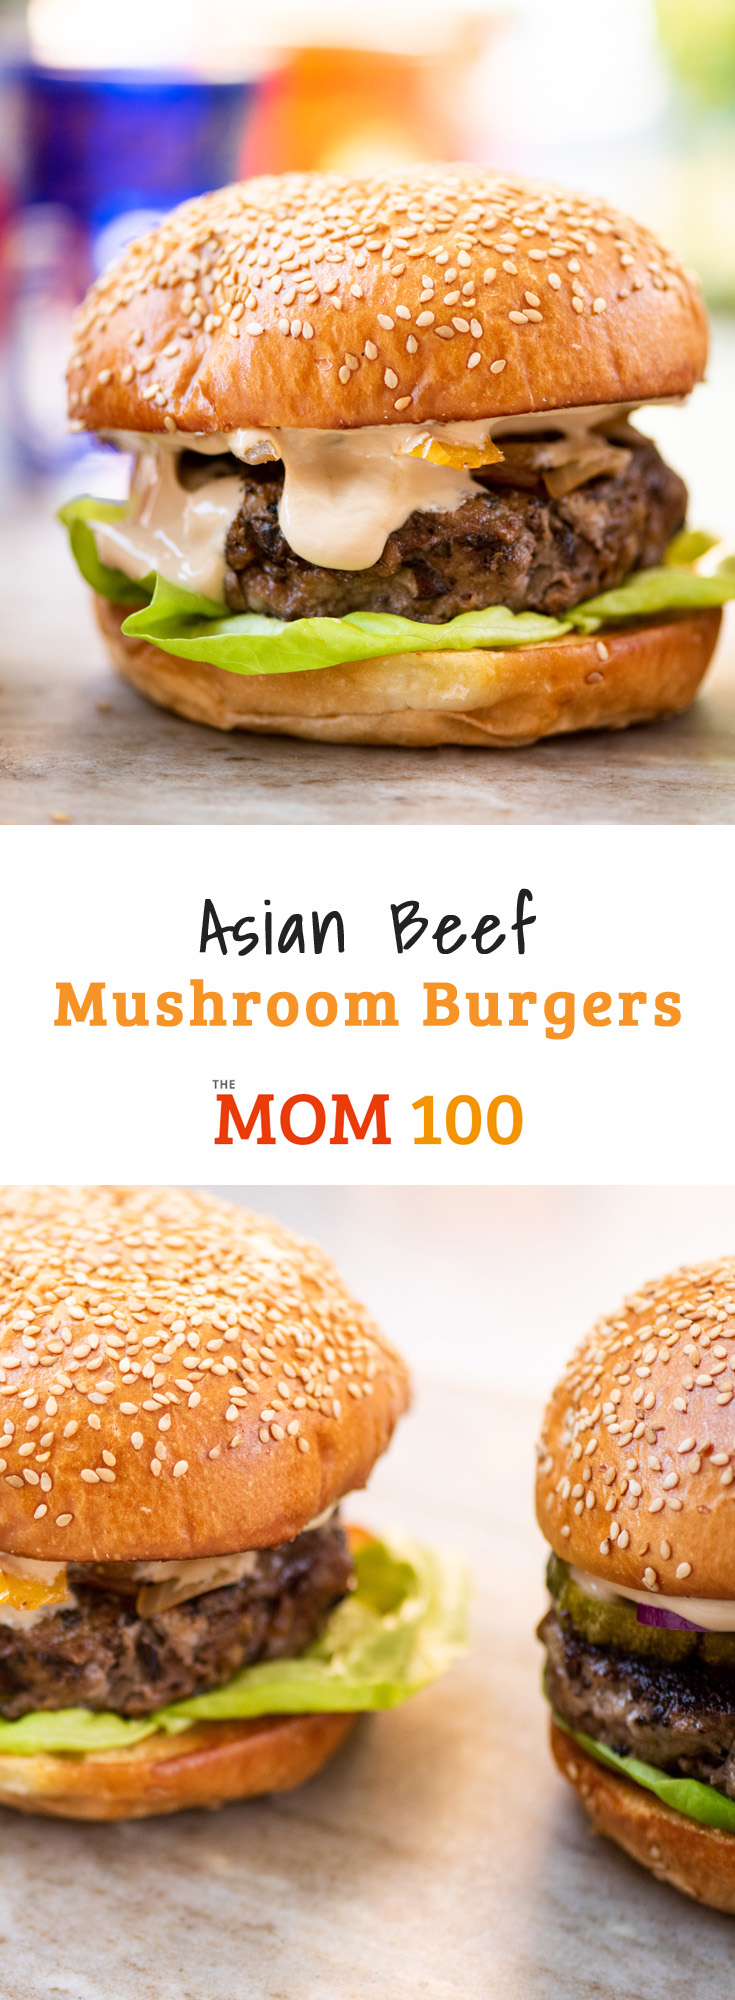 When chopped (cooked or raw) mushrooms have a very similar texture to ground meat, and they blend right in to these Asian Beef Mushroom Burgers.